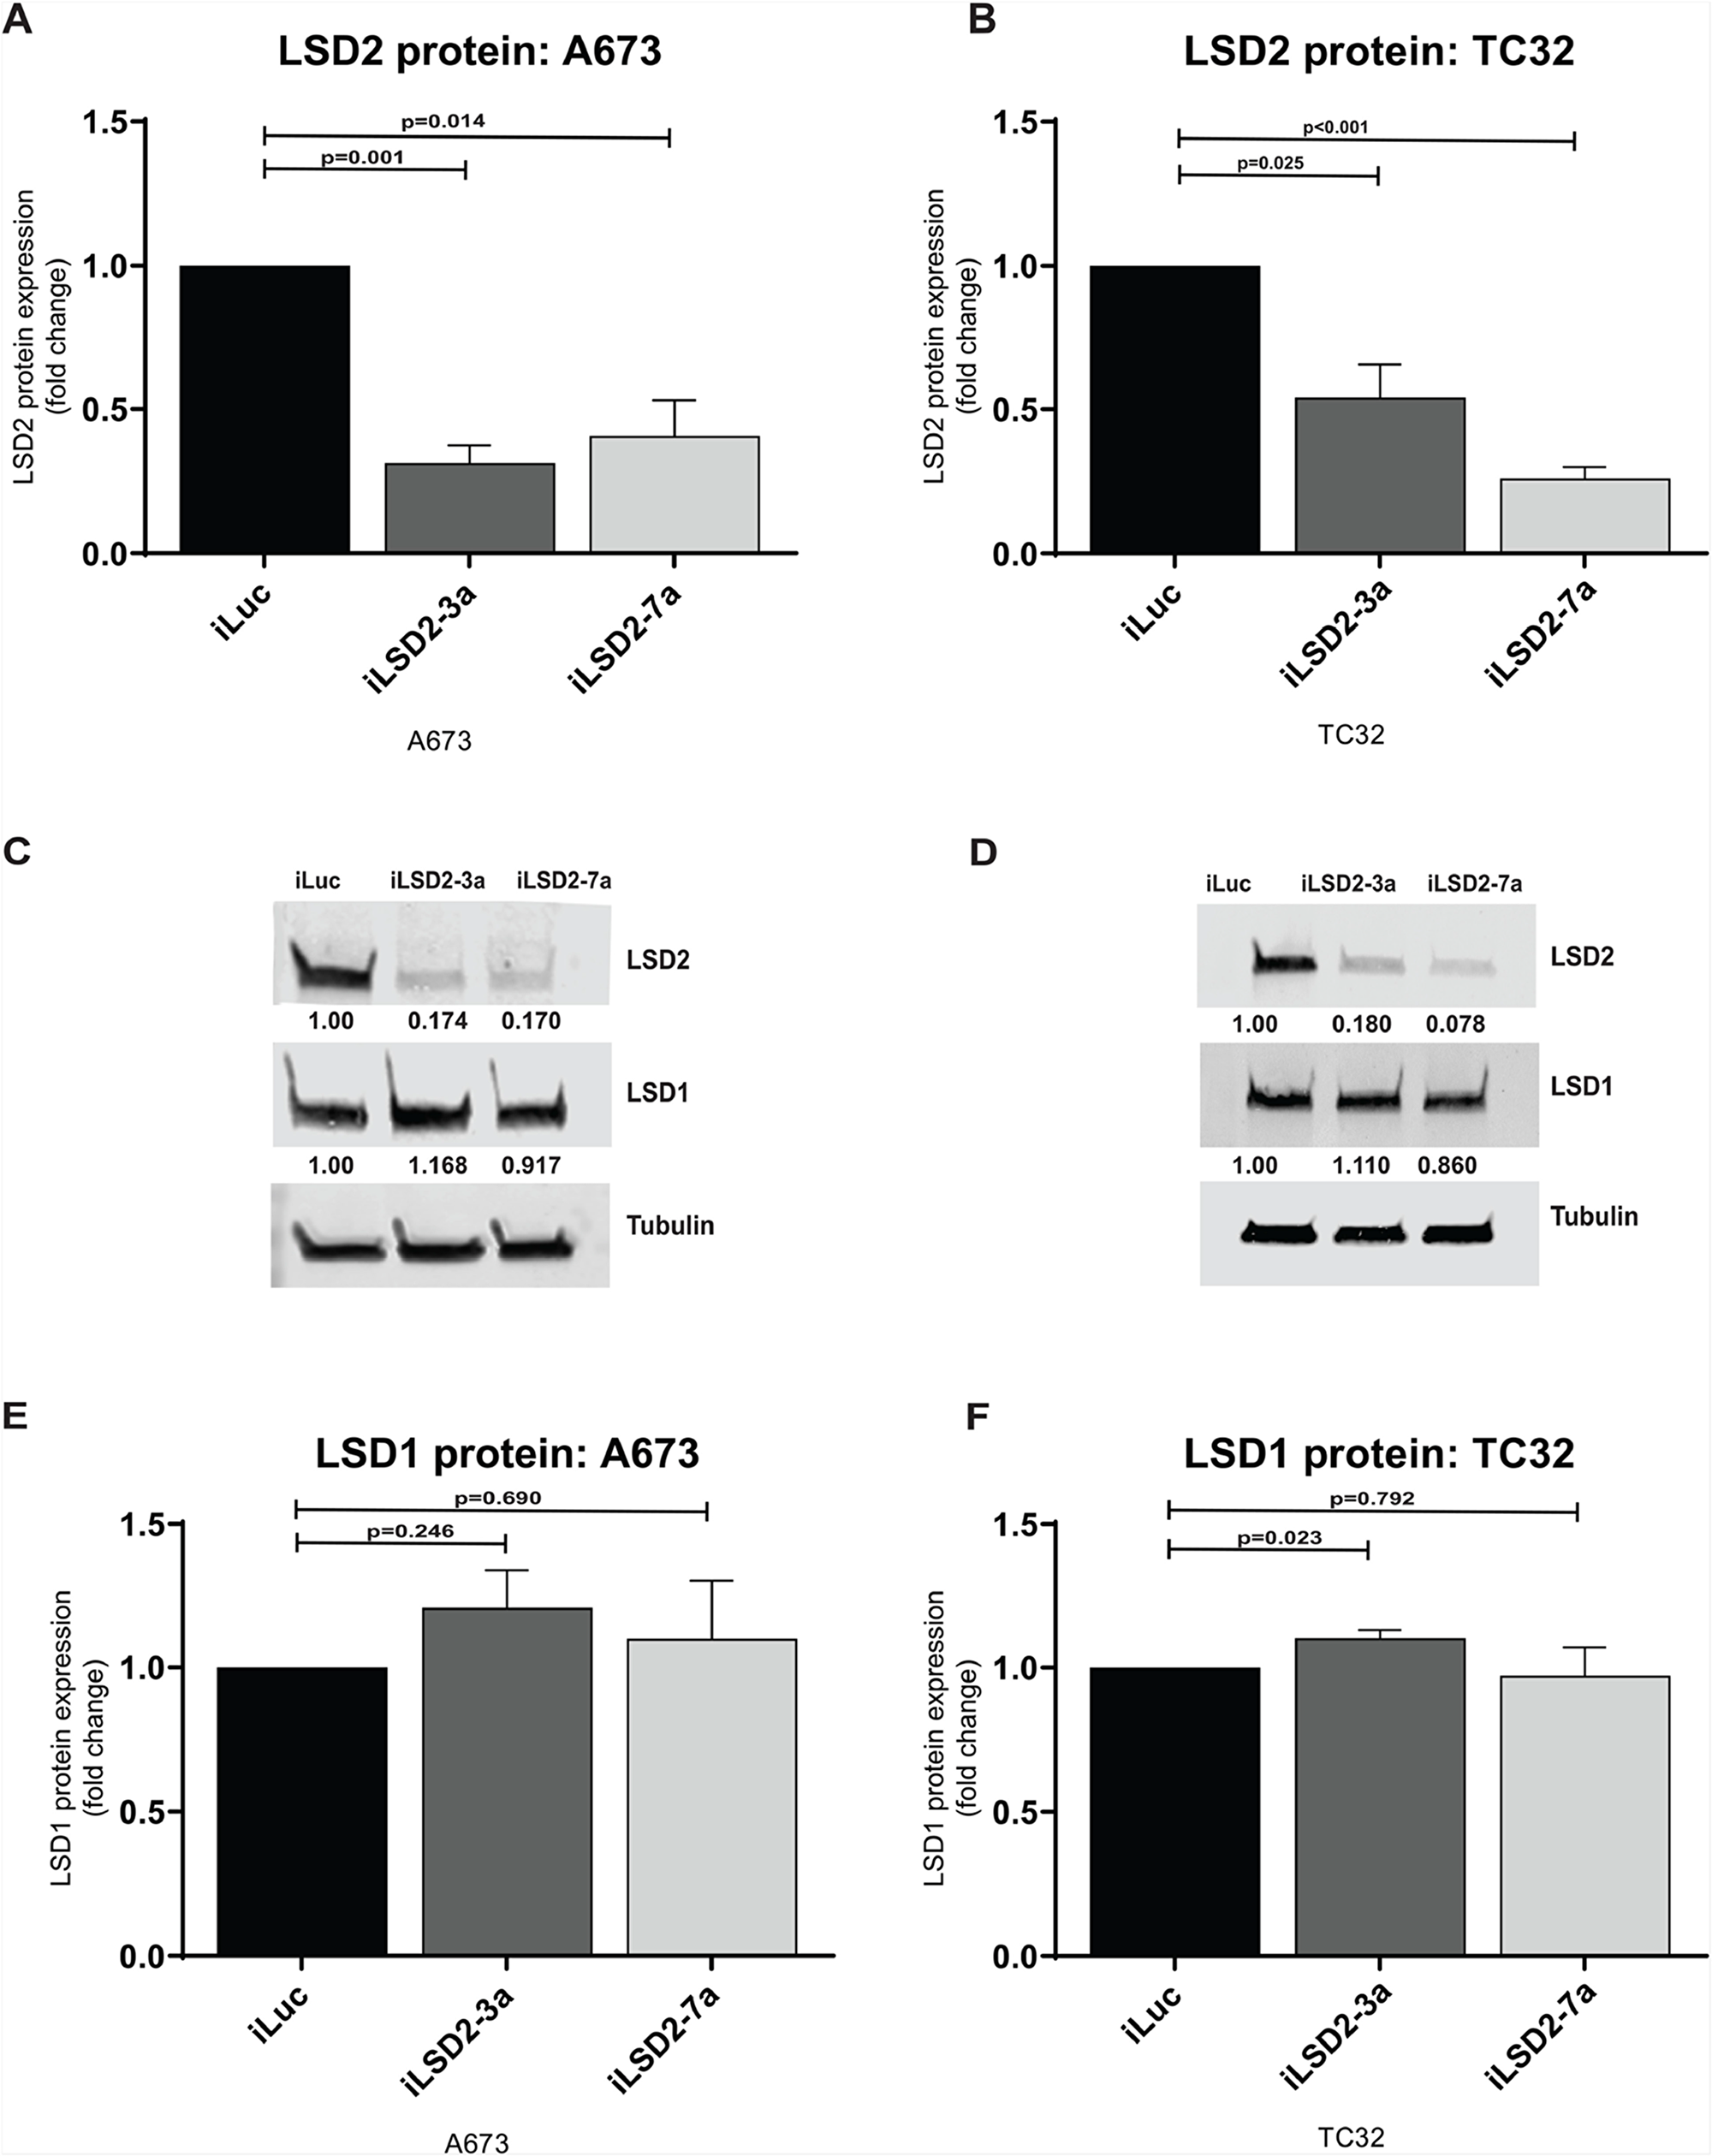 LSD2 protein expression following retroviral knockdown.